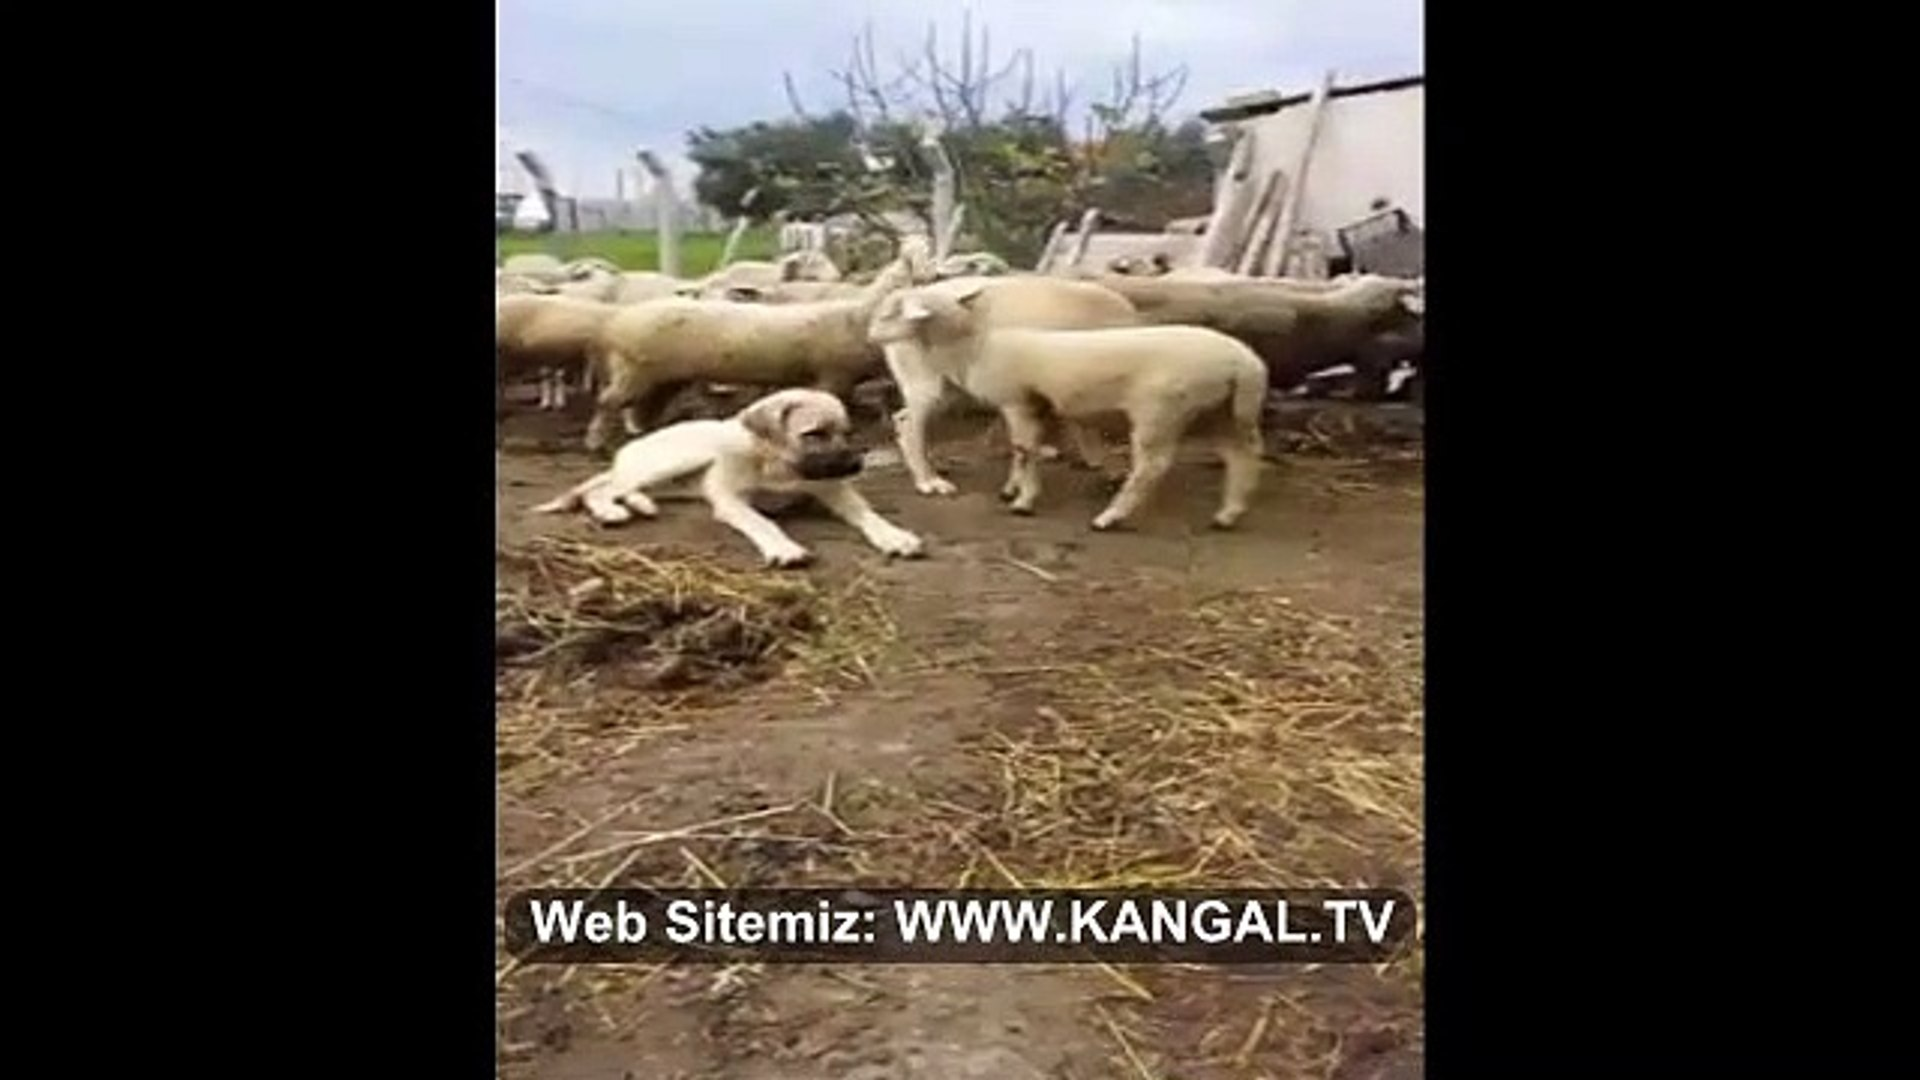 ANADOLU COBAN KOPEGiNiN KOYUNLAR ile DOSTLUGU - ANATOLiAN SHEPHERD DOG and SHEEP FRiEND